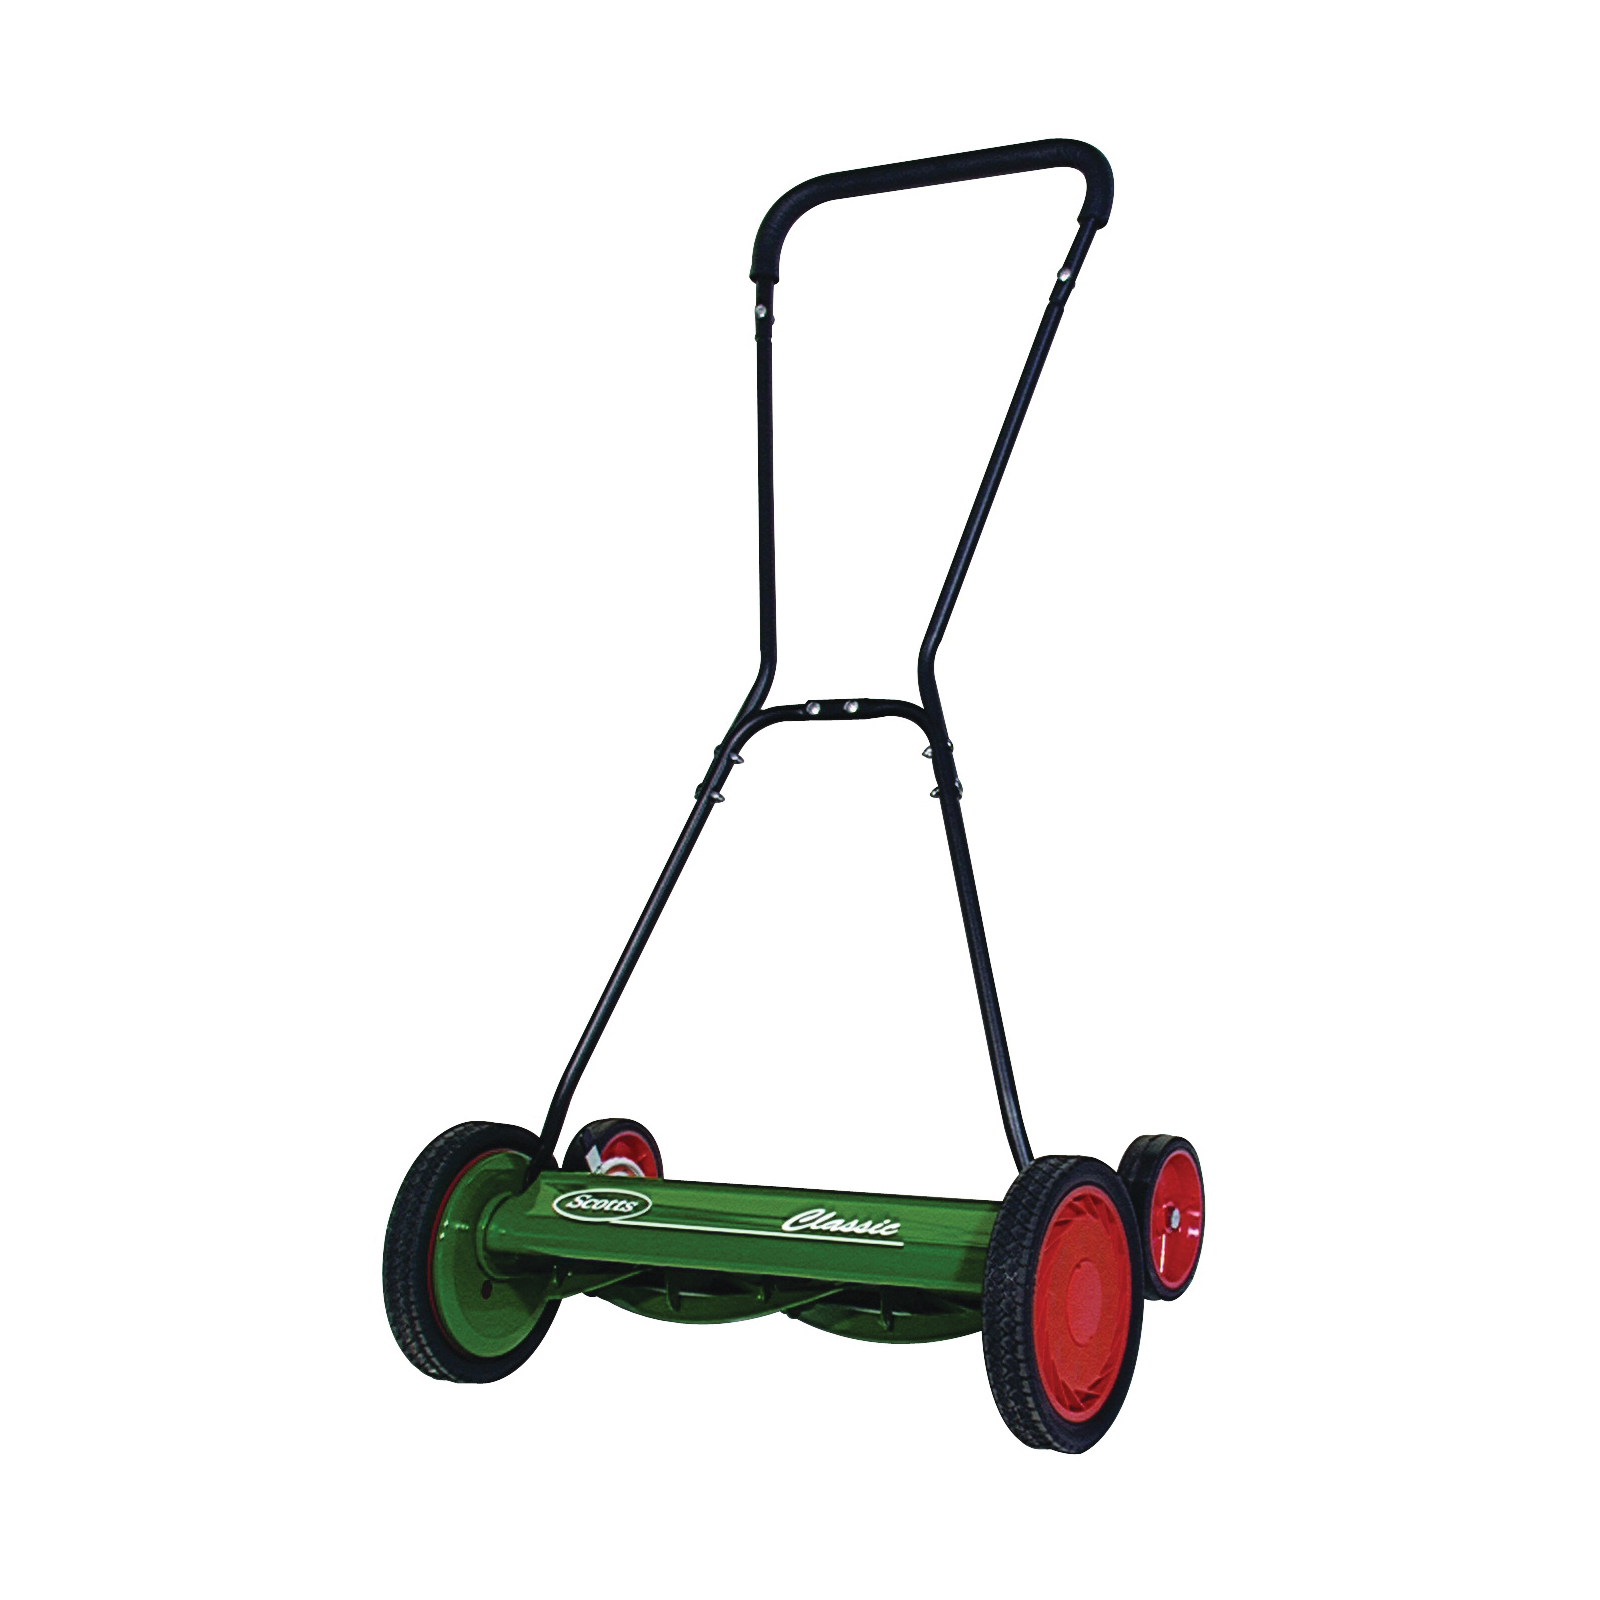 Picture of GREAT STATES 2000-20 Reel Lawn Mower, 20 in W Cutting, 5 -Blade, Foam-Grip Handle, Green